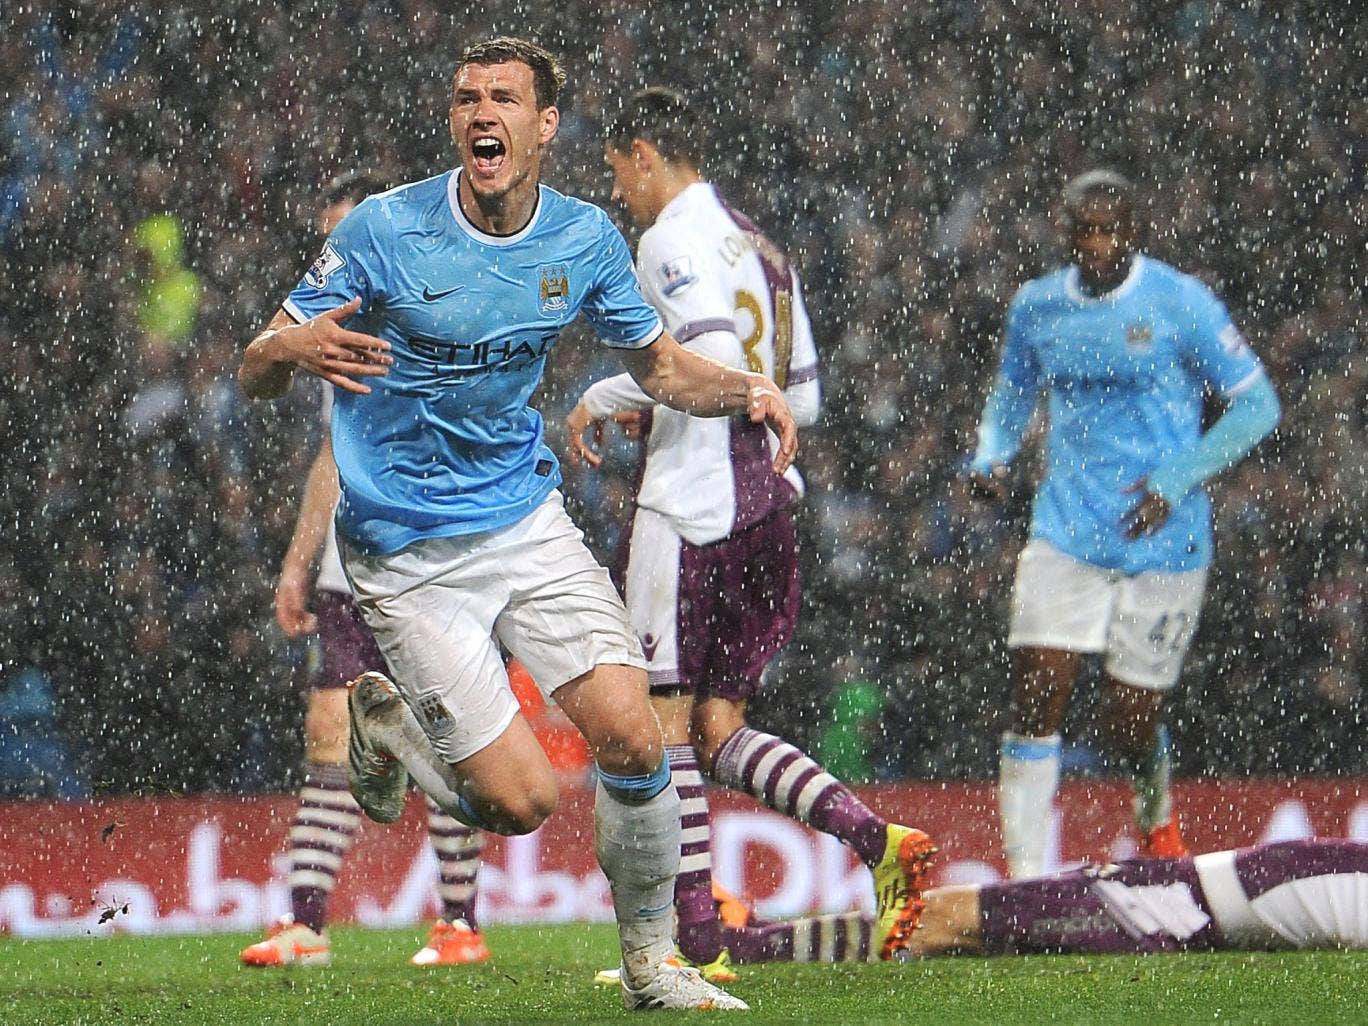 Edin Dzeko turns away after scoring Manchester City's opening goal during a downpour at the Etihad Stadium